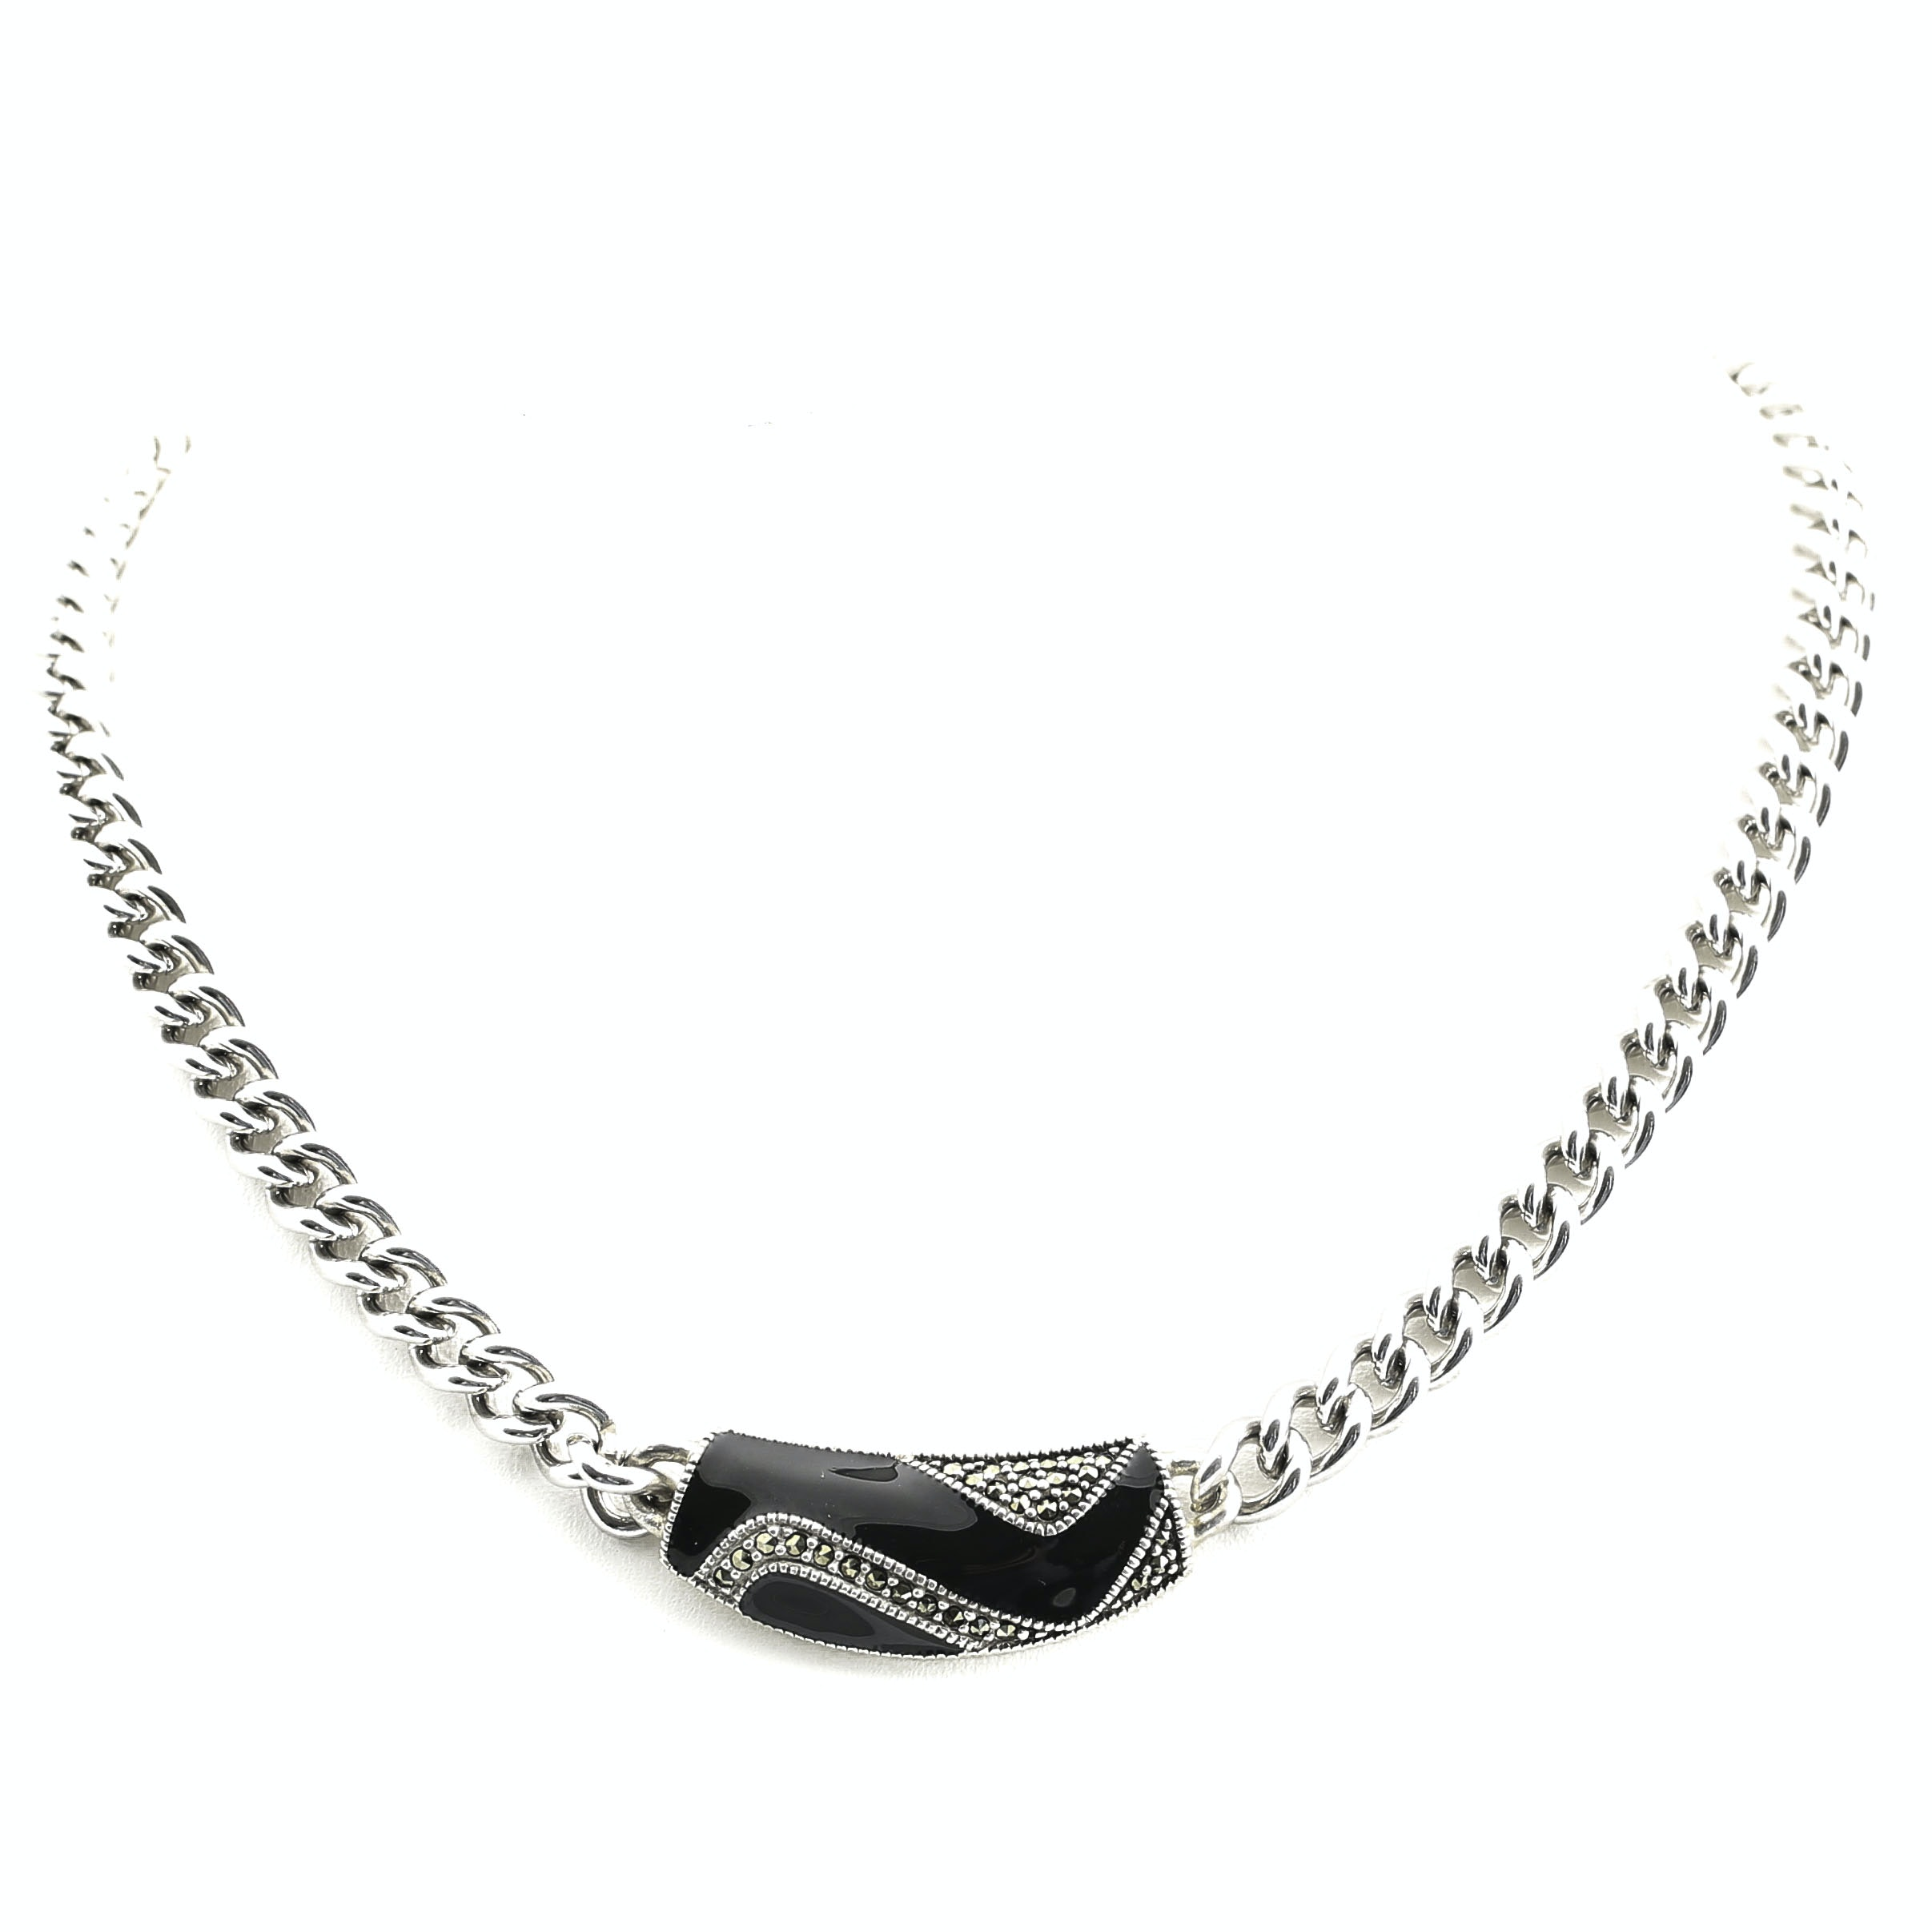 Vintage Sterling Silver Marcasite and Enamel Curb Chain Necklace